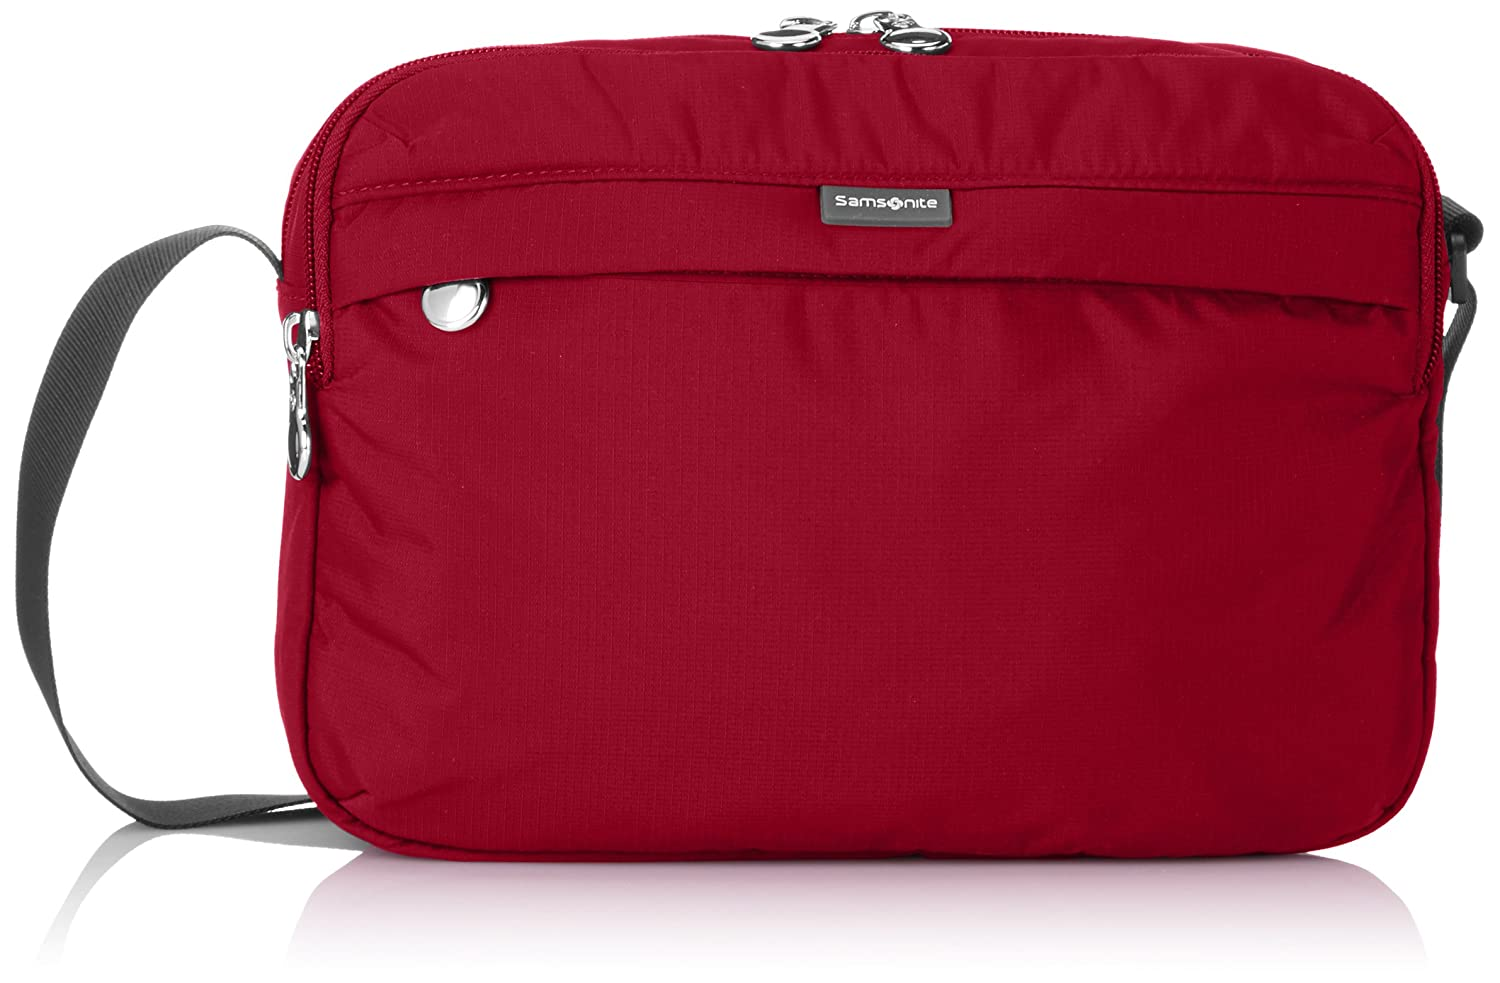 Samsonite Travel Accessor. V - Reporter Bag Horizontal Aktentasche, Rot 64681.1726